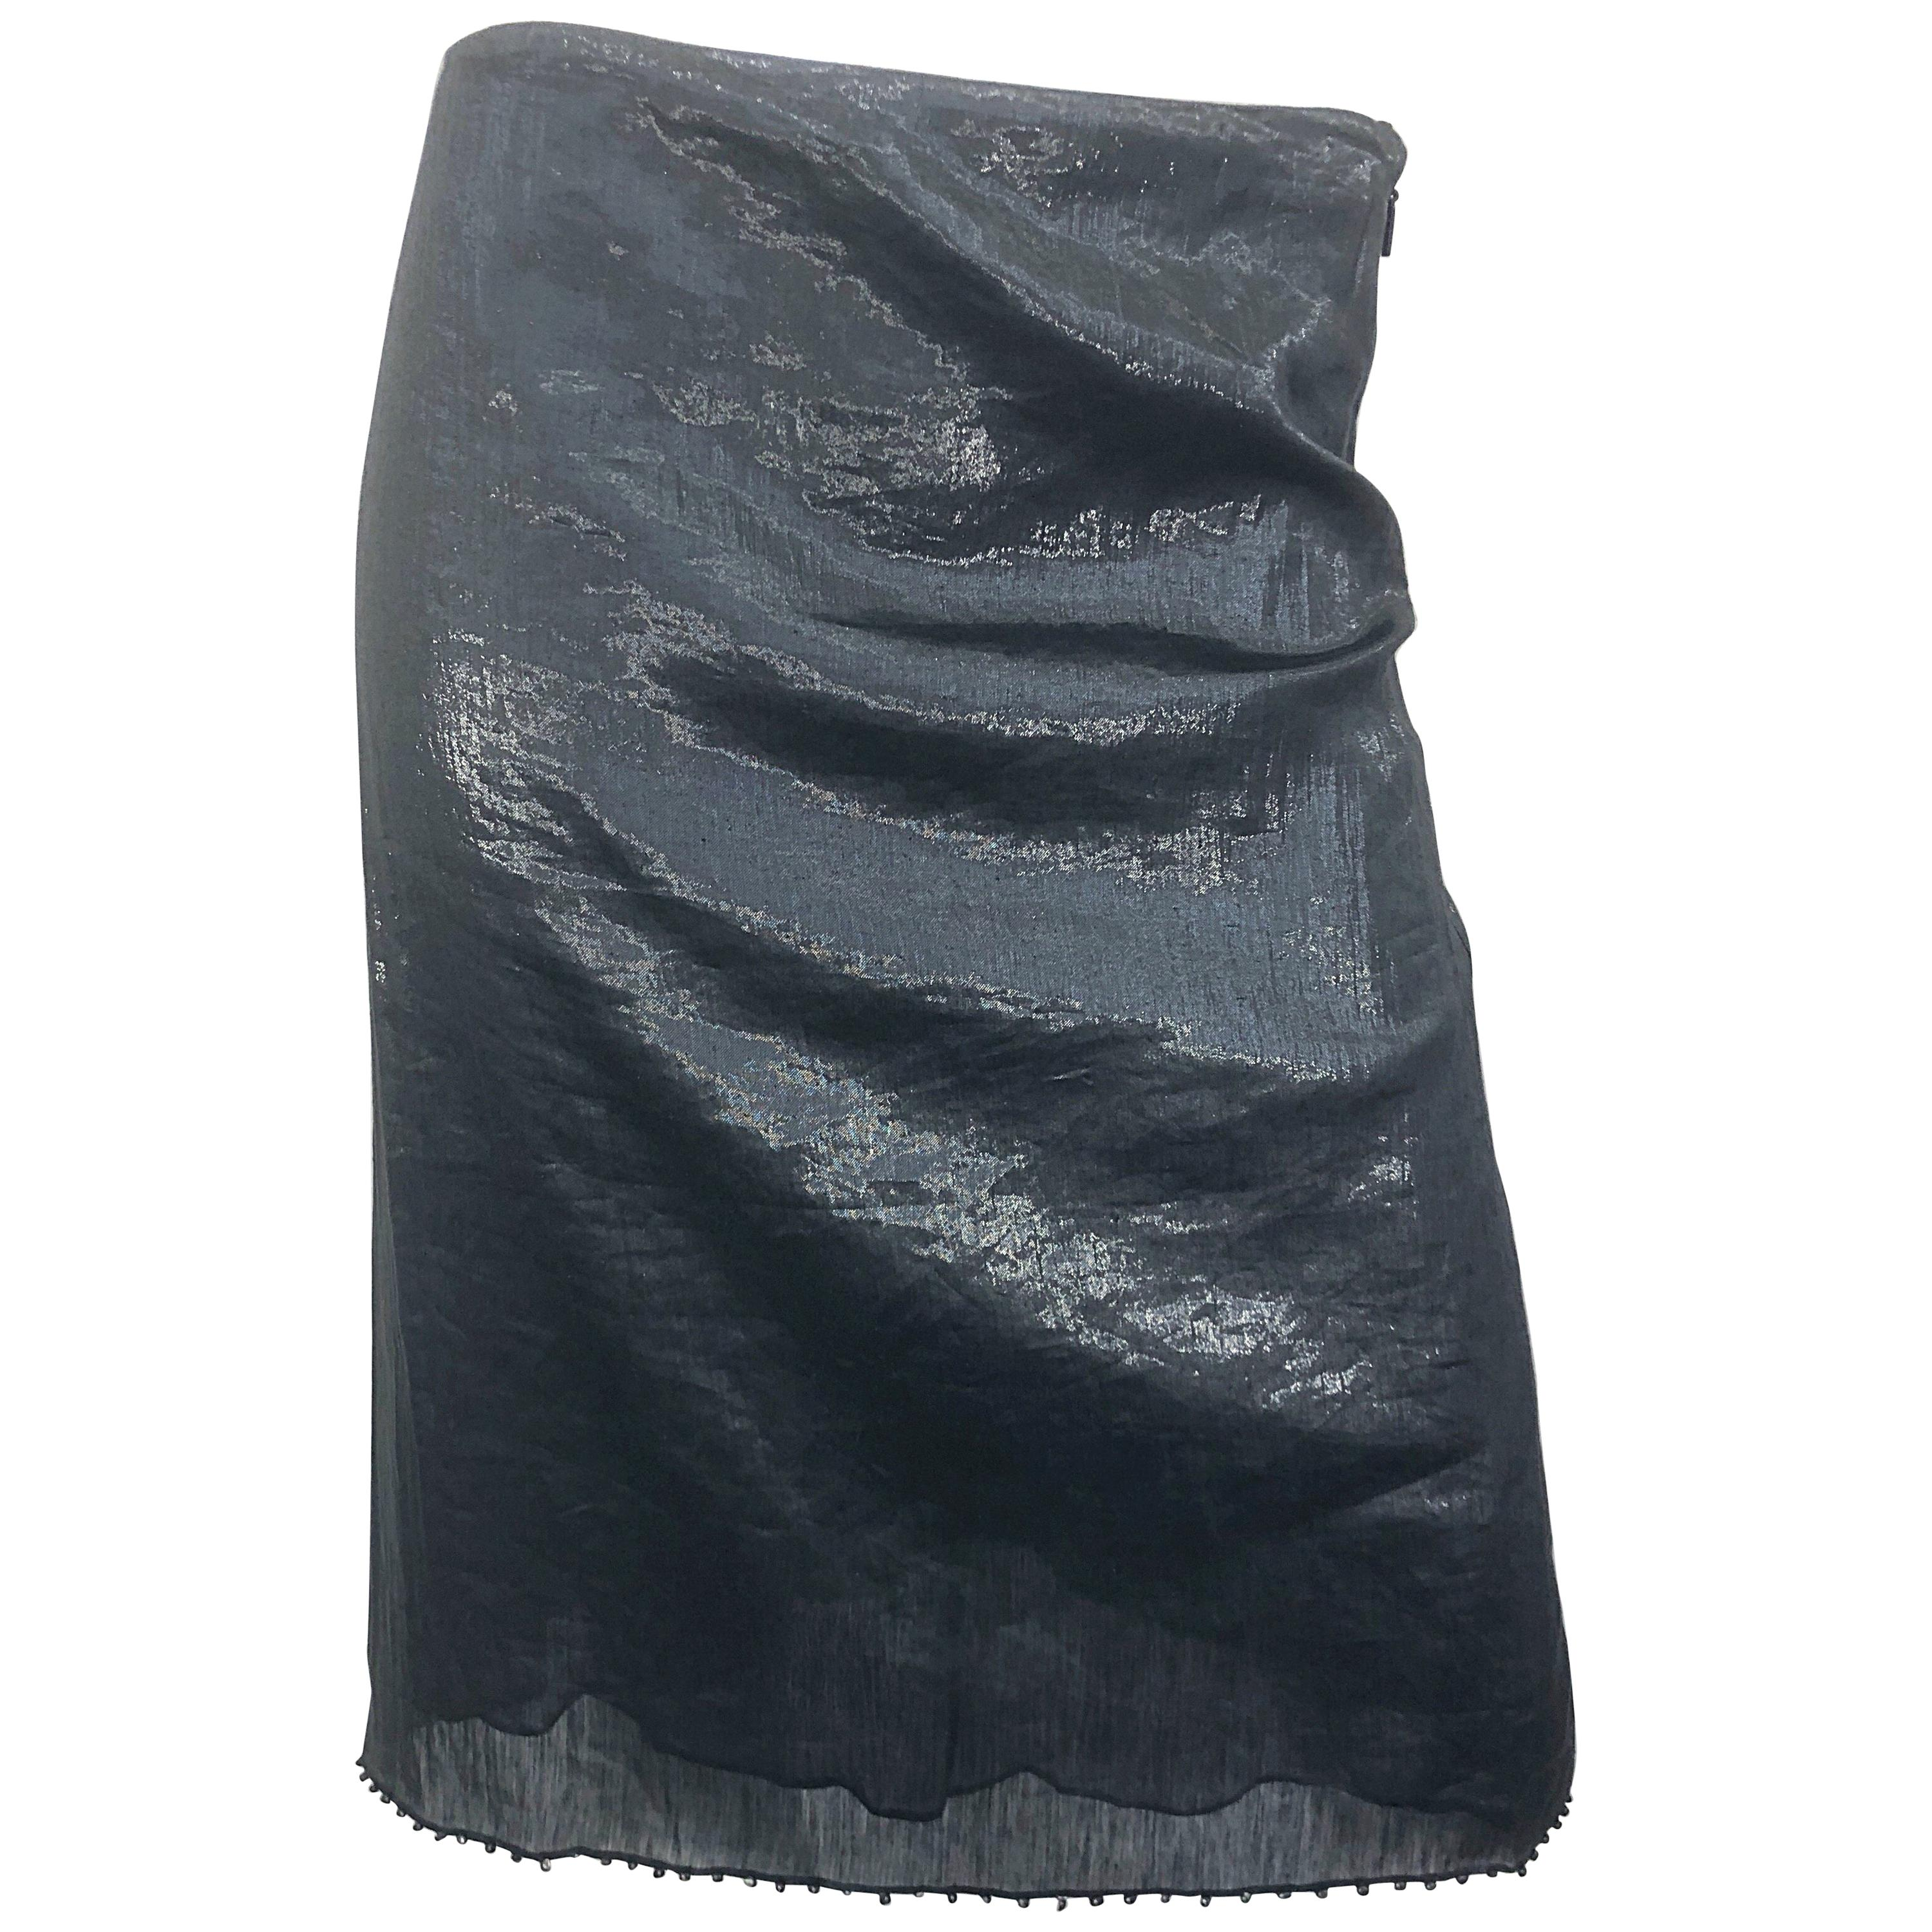 da7f8e500 Vintage Gucci Skirts - 70 For Sale at 1stdibs